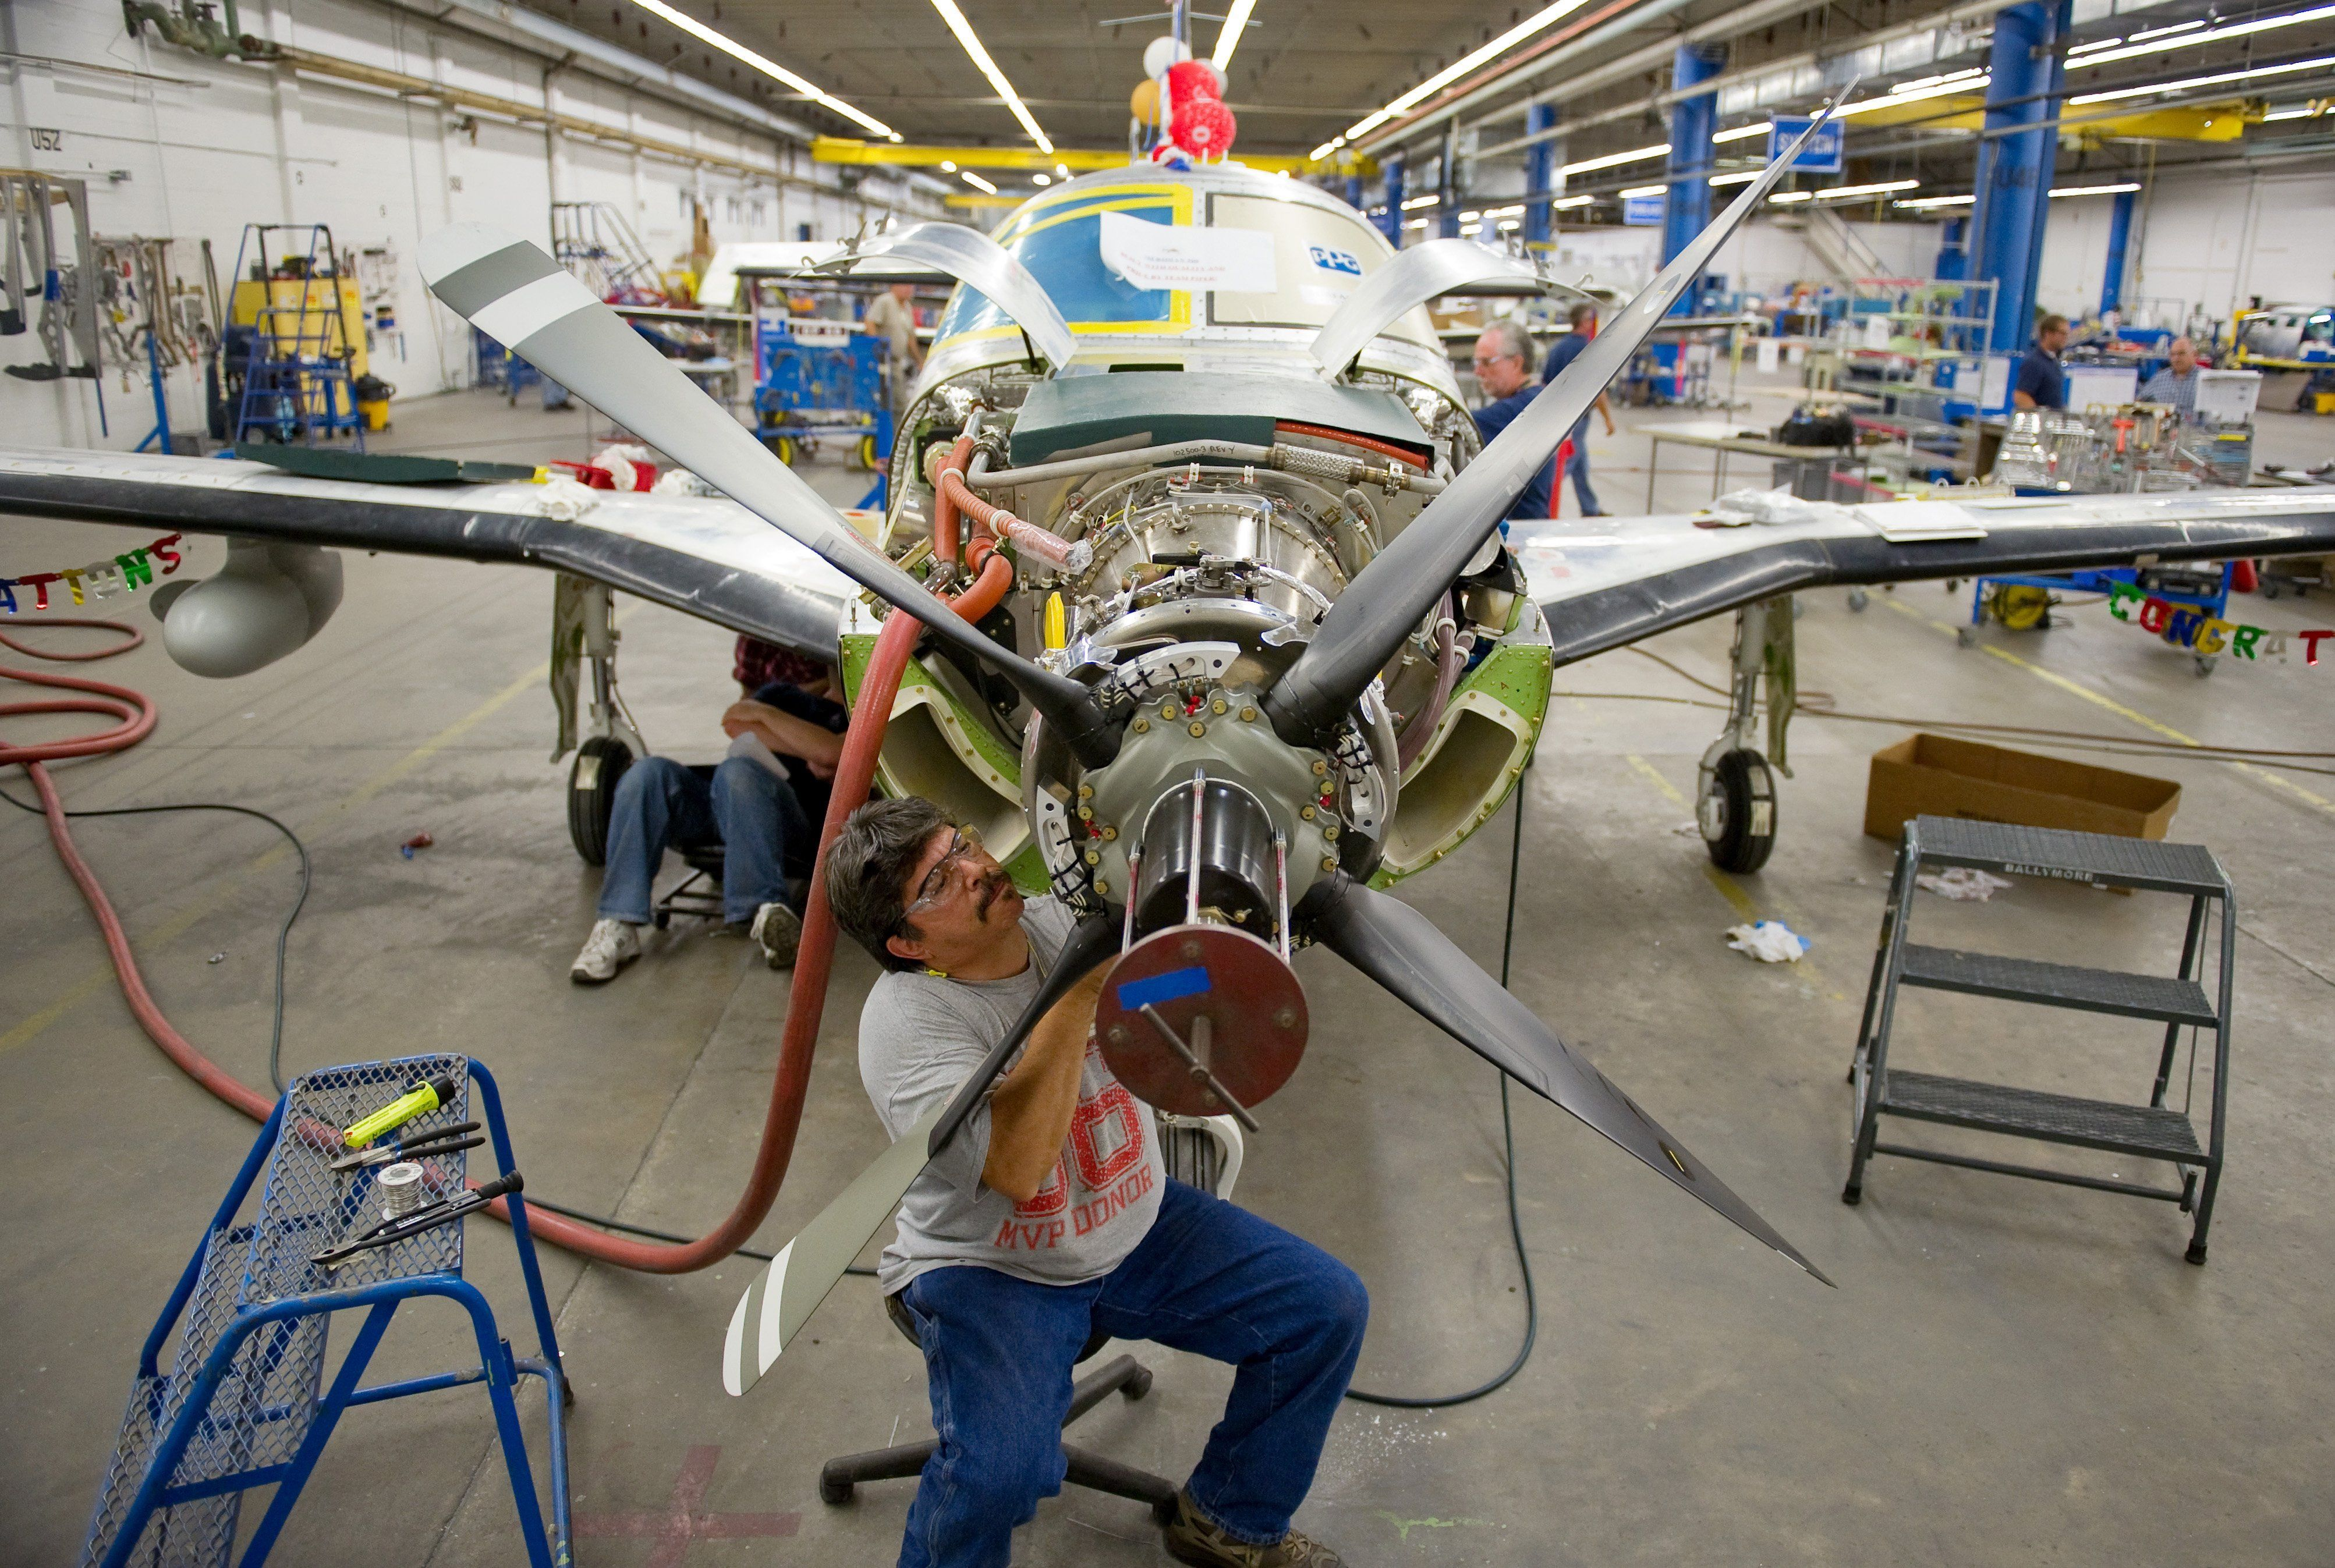 In this 2012 file photo, a Piper Aircraft. is on the final assembly line at the Vero Beach-based aircraft manufacturer.